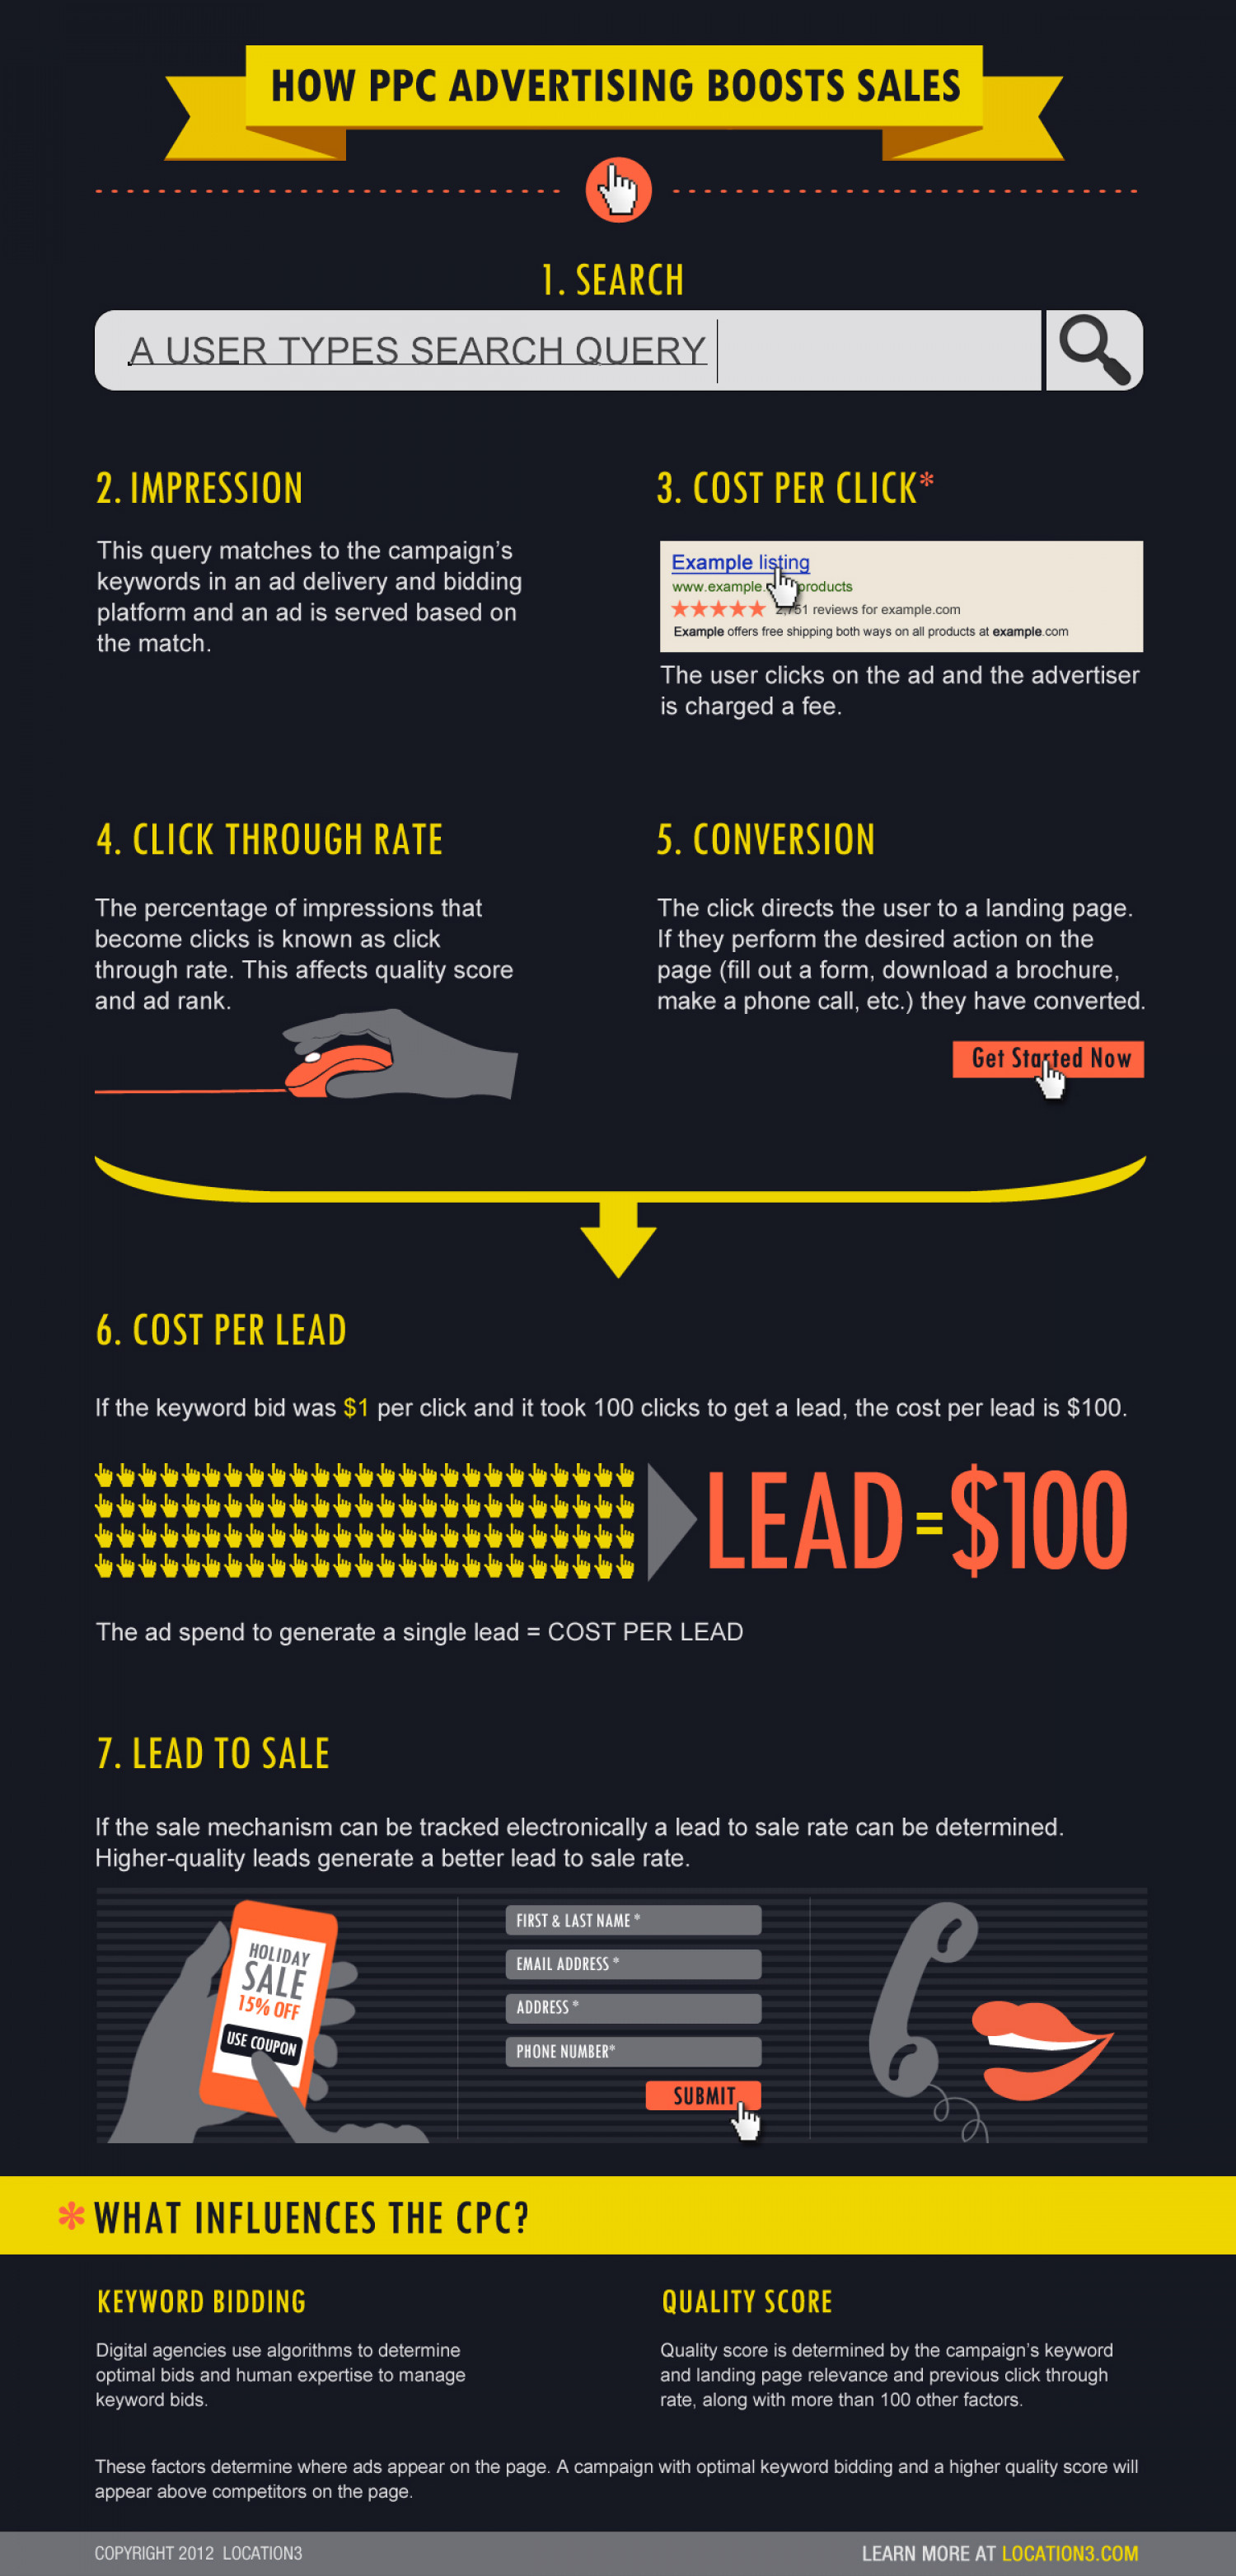 How PPC Advertising Boosts Sales Infographic